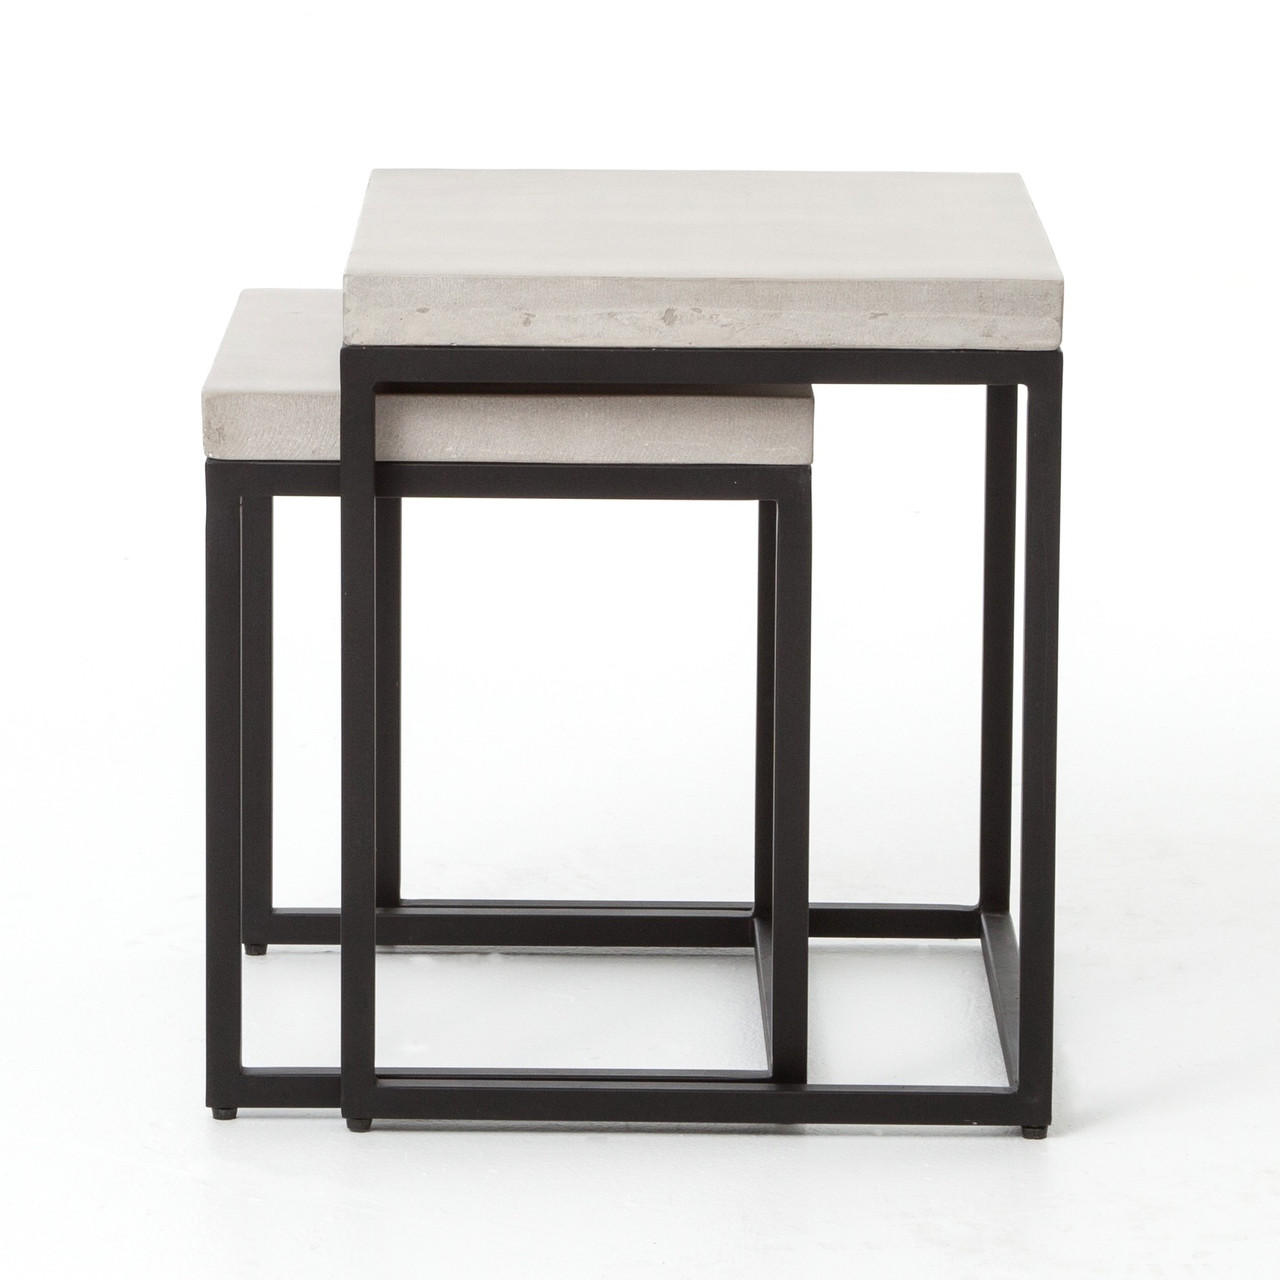 Maximus indoor outdoor nesting side tables natural concrete maximus indoor outdoor nesting side tables natural concrete watchthetrailerfo